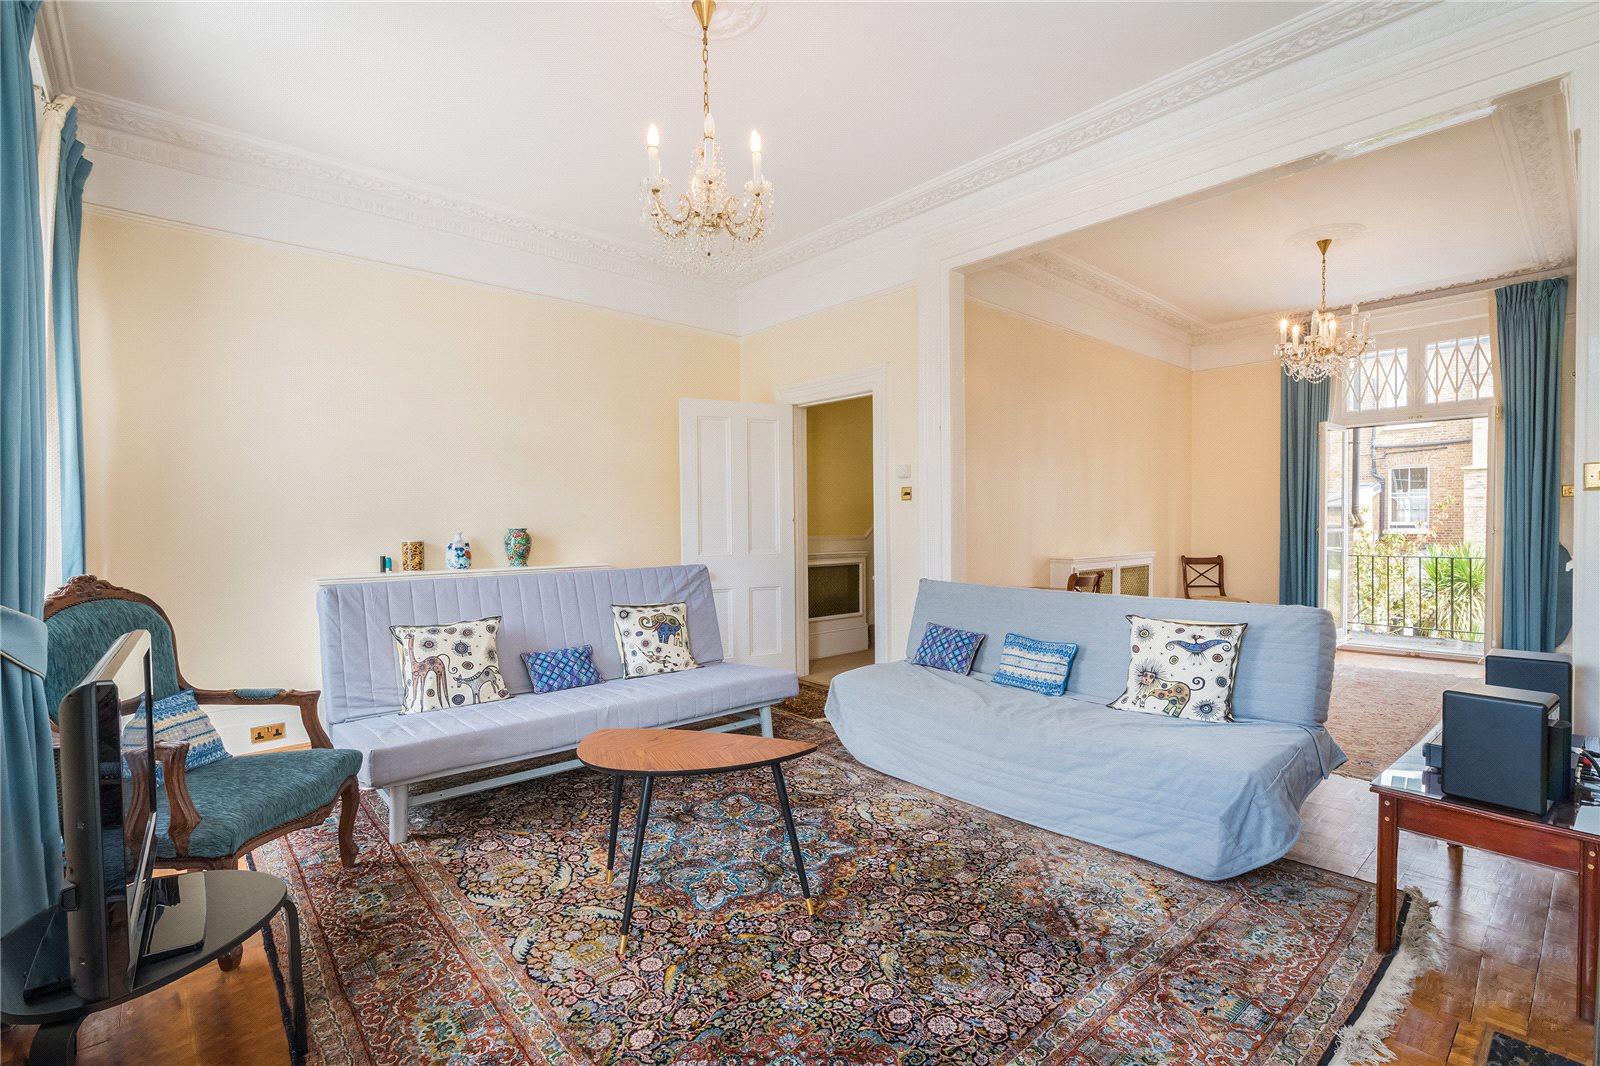 Additional photo for property listing at Neville Terrace, South Kensington, London, SW7 South Kensington, London, England